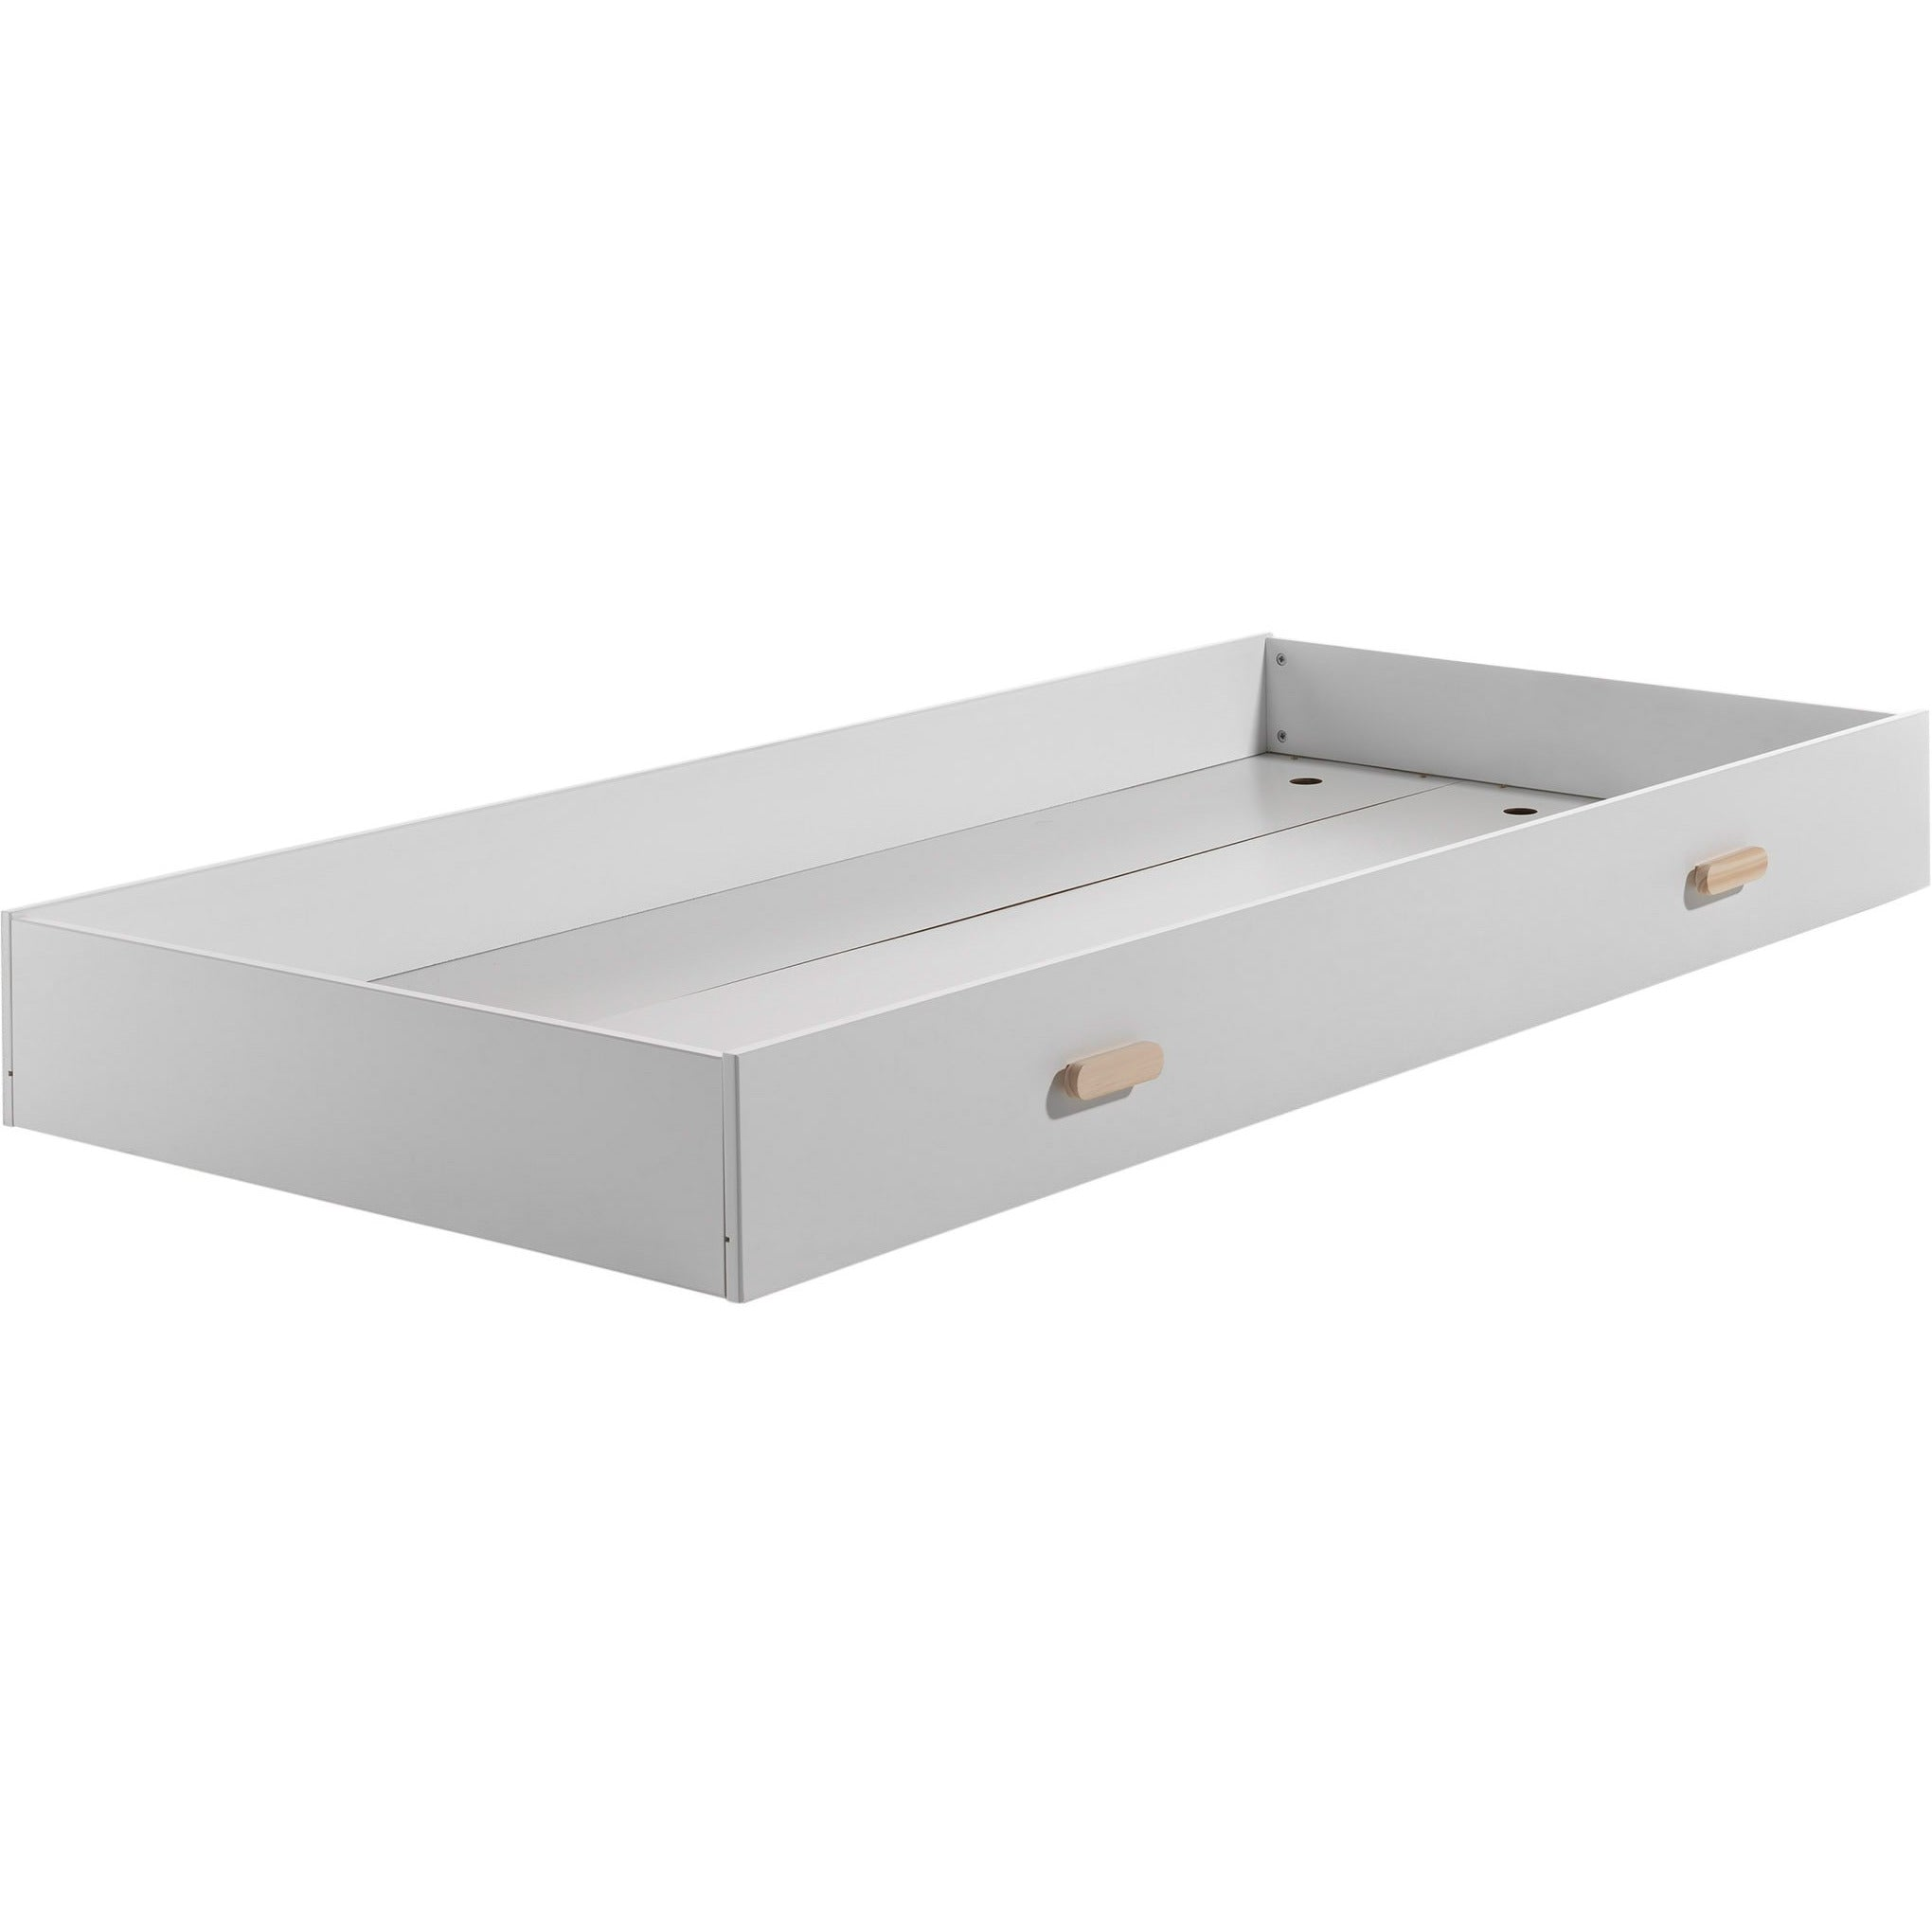 Trundle Drawer for Kiddy Single Bed